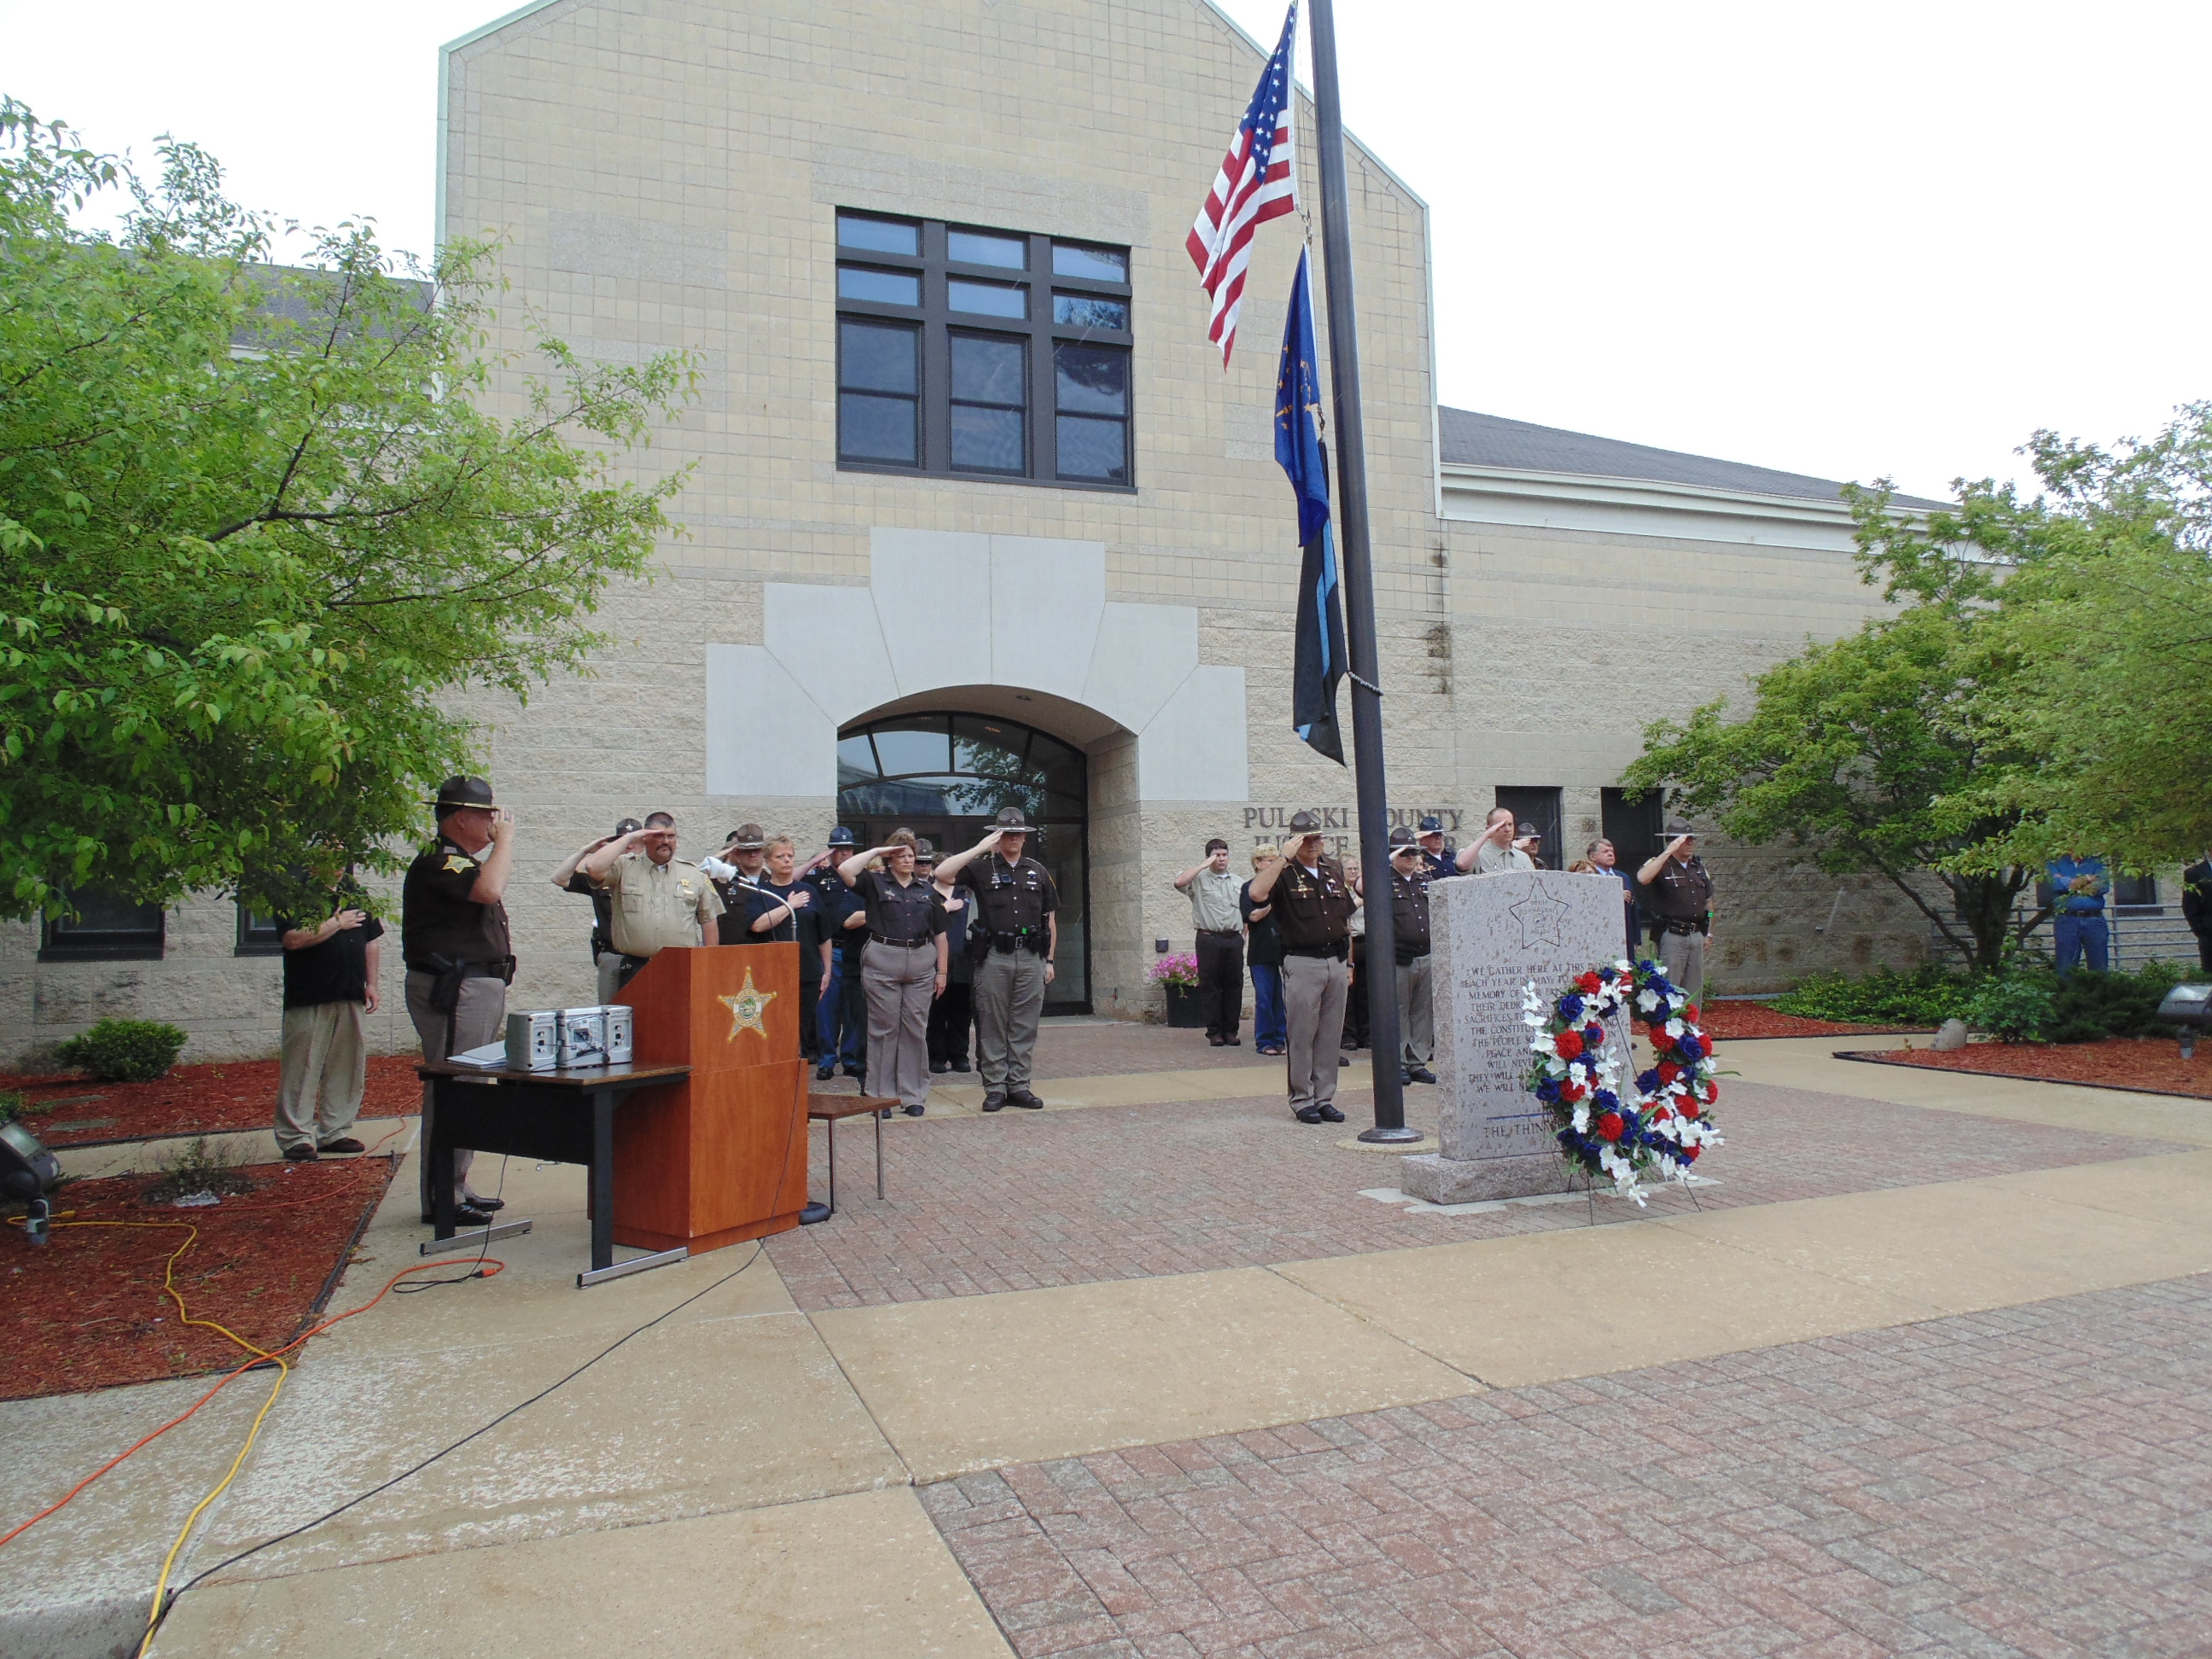 Indiana pulaski county francesville - A Memorial Service Was Held Tuesday Afternoon At The Pulaski County Justice Center To Remember The Lives Of Three Officers Who Were Killed In The Line Of